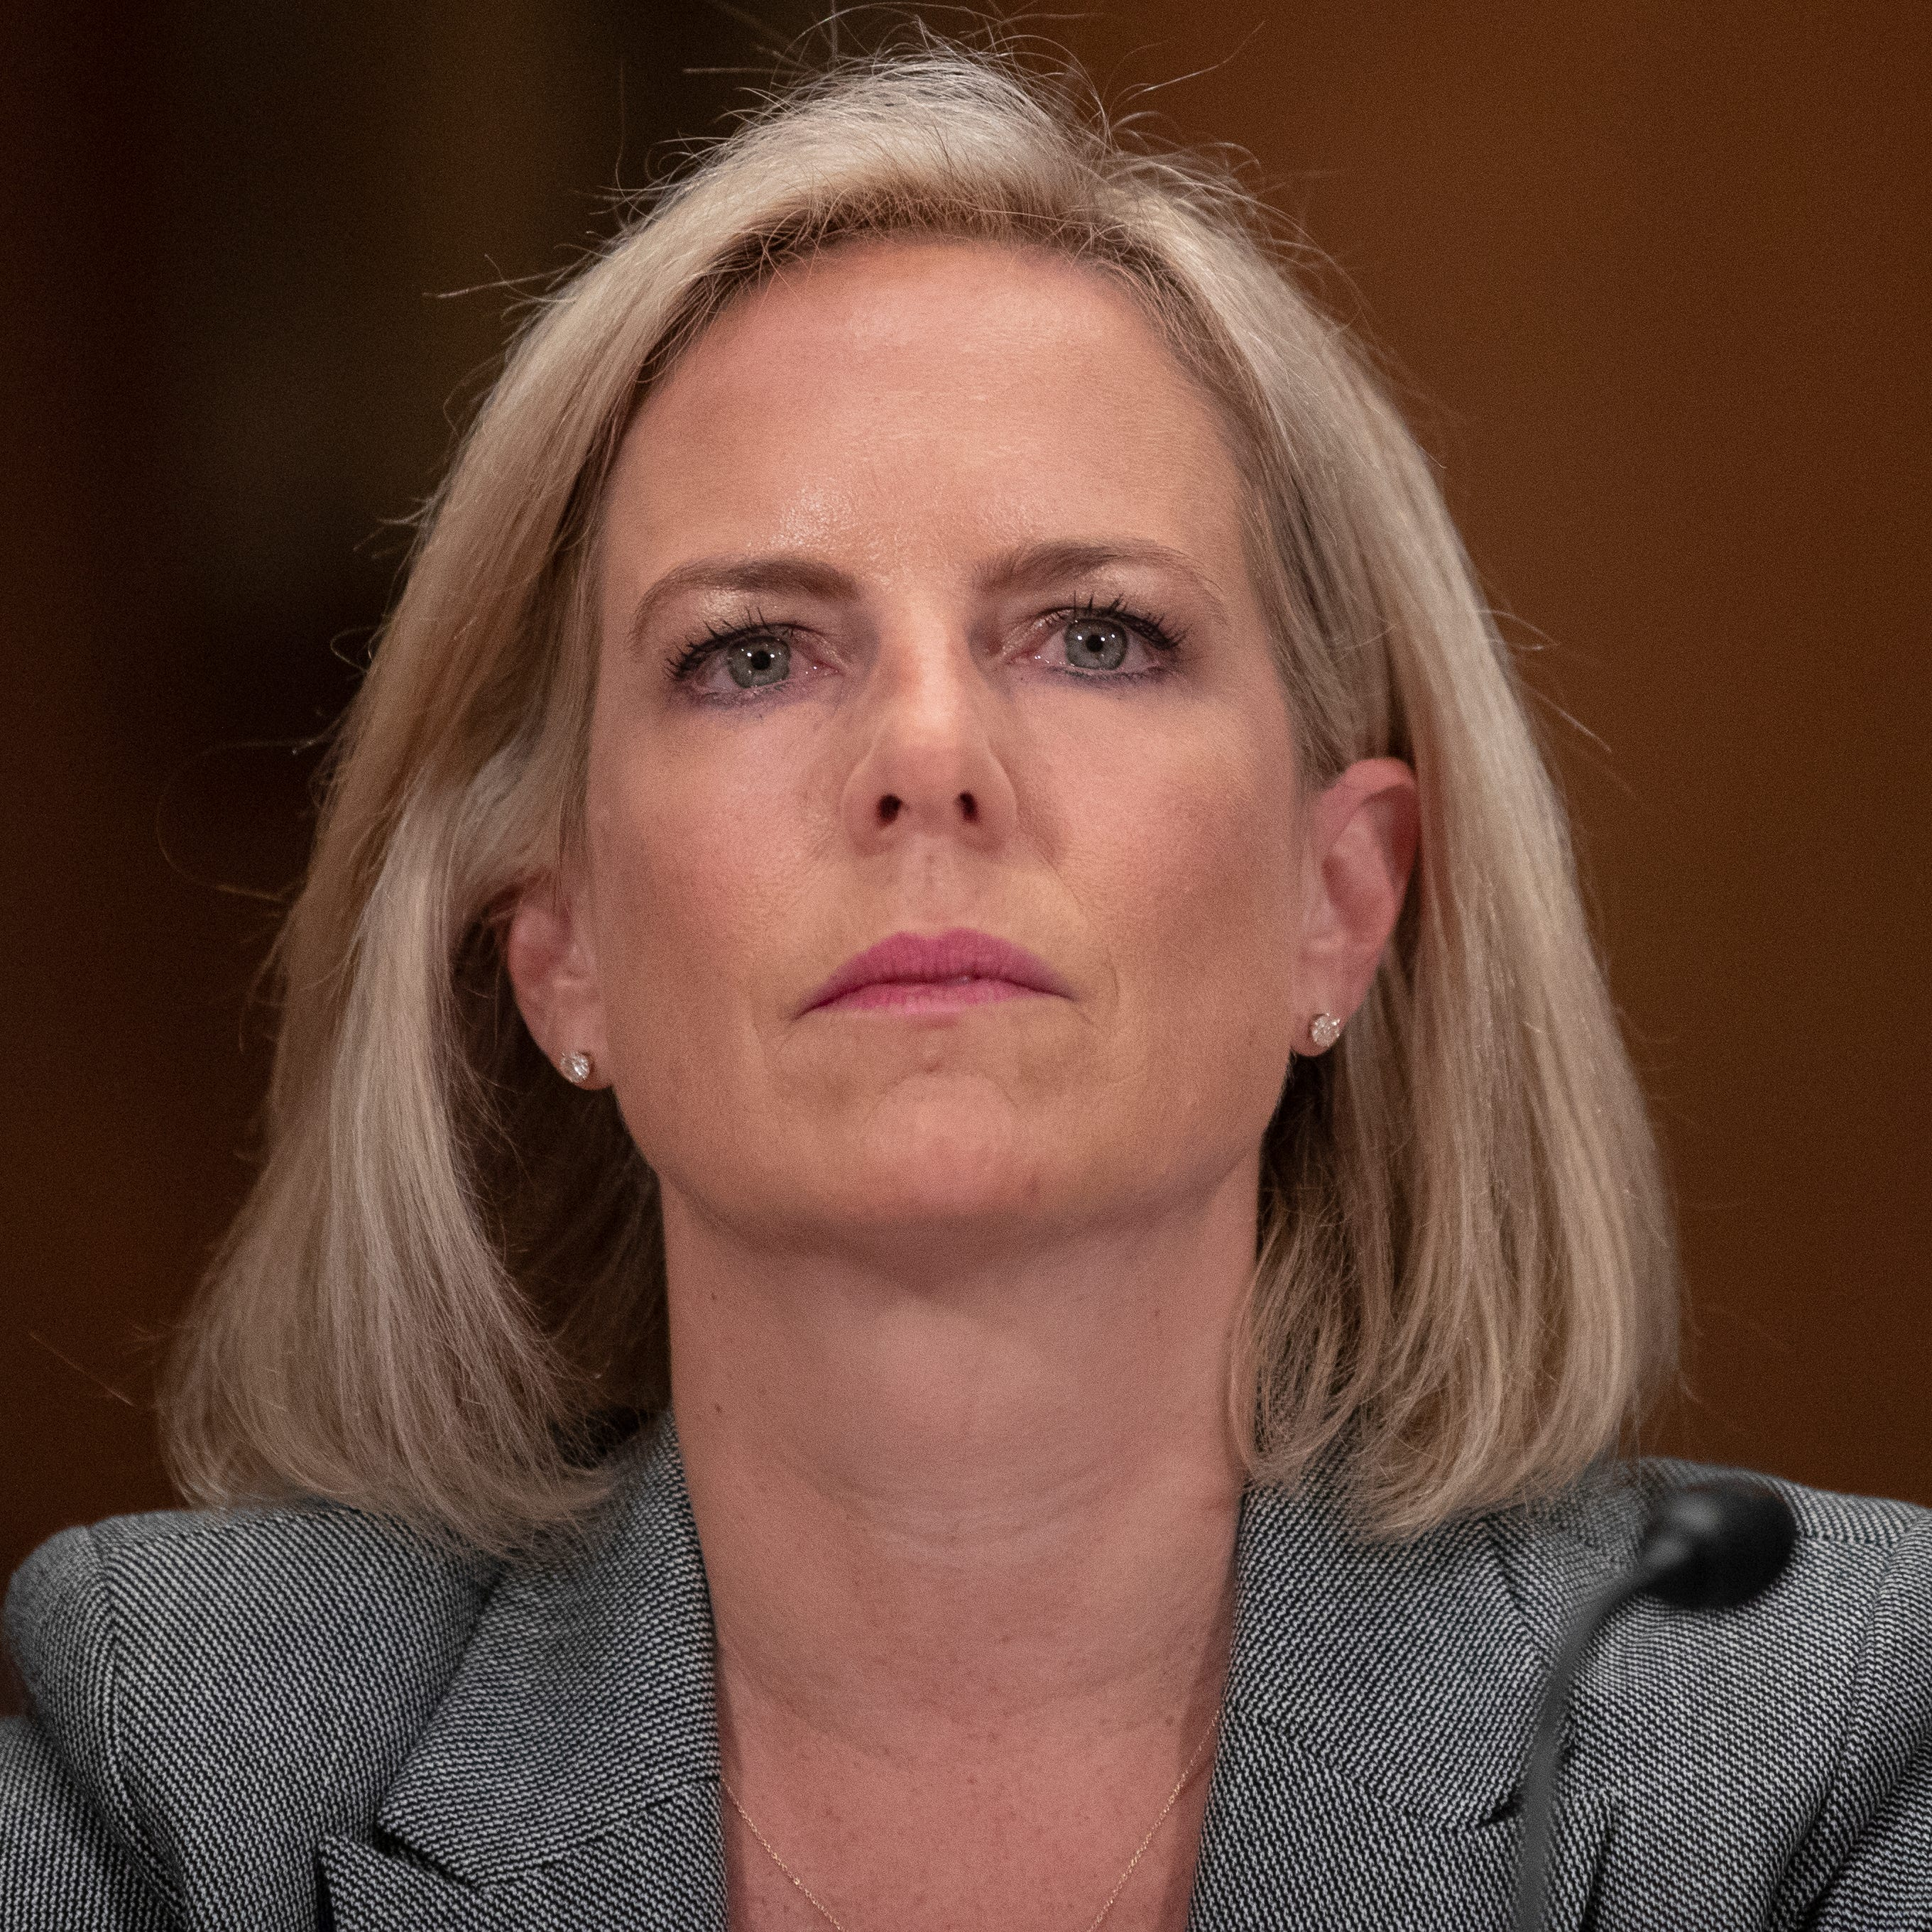 Secretary of Homeland Security Kirstjen Nielsen is out of the Trump administration